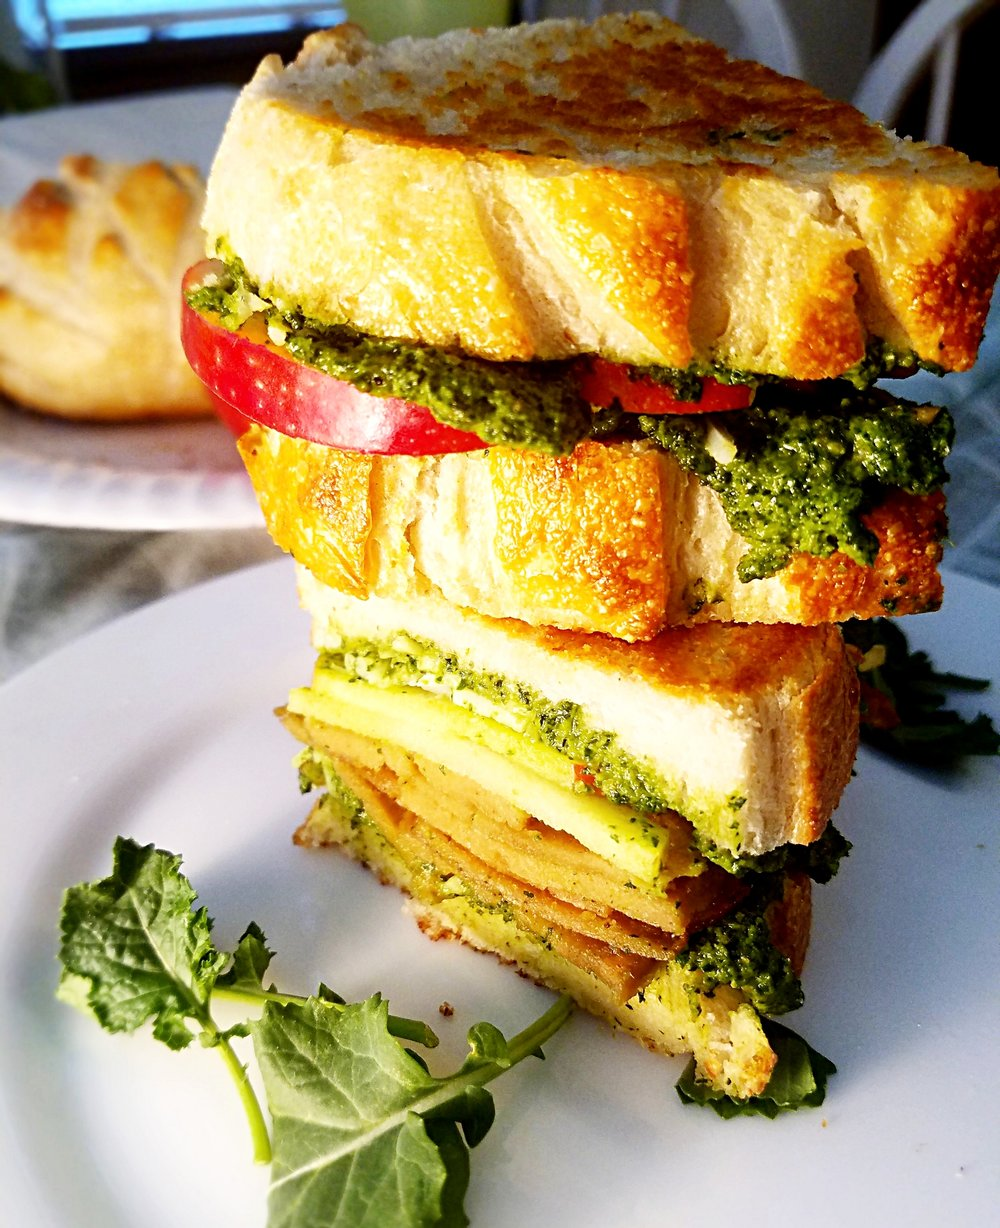 Grilled Walnut Kale Pesto Sandwich with Sliced Apples and Seitan